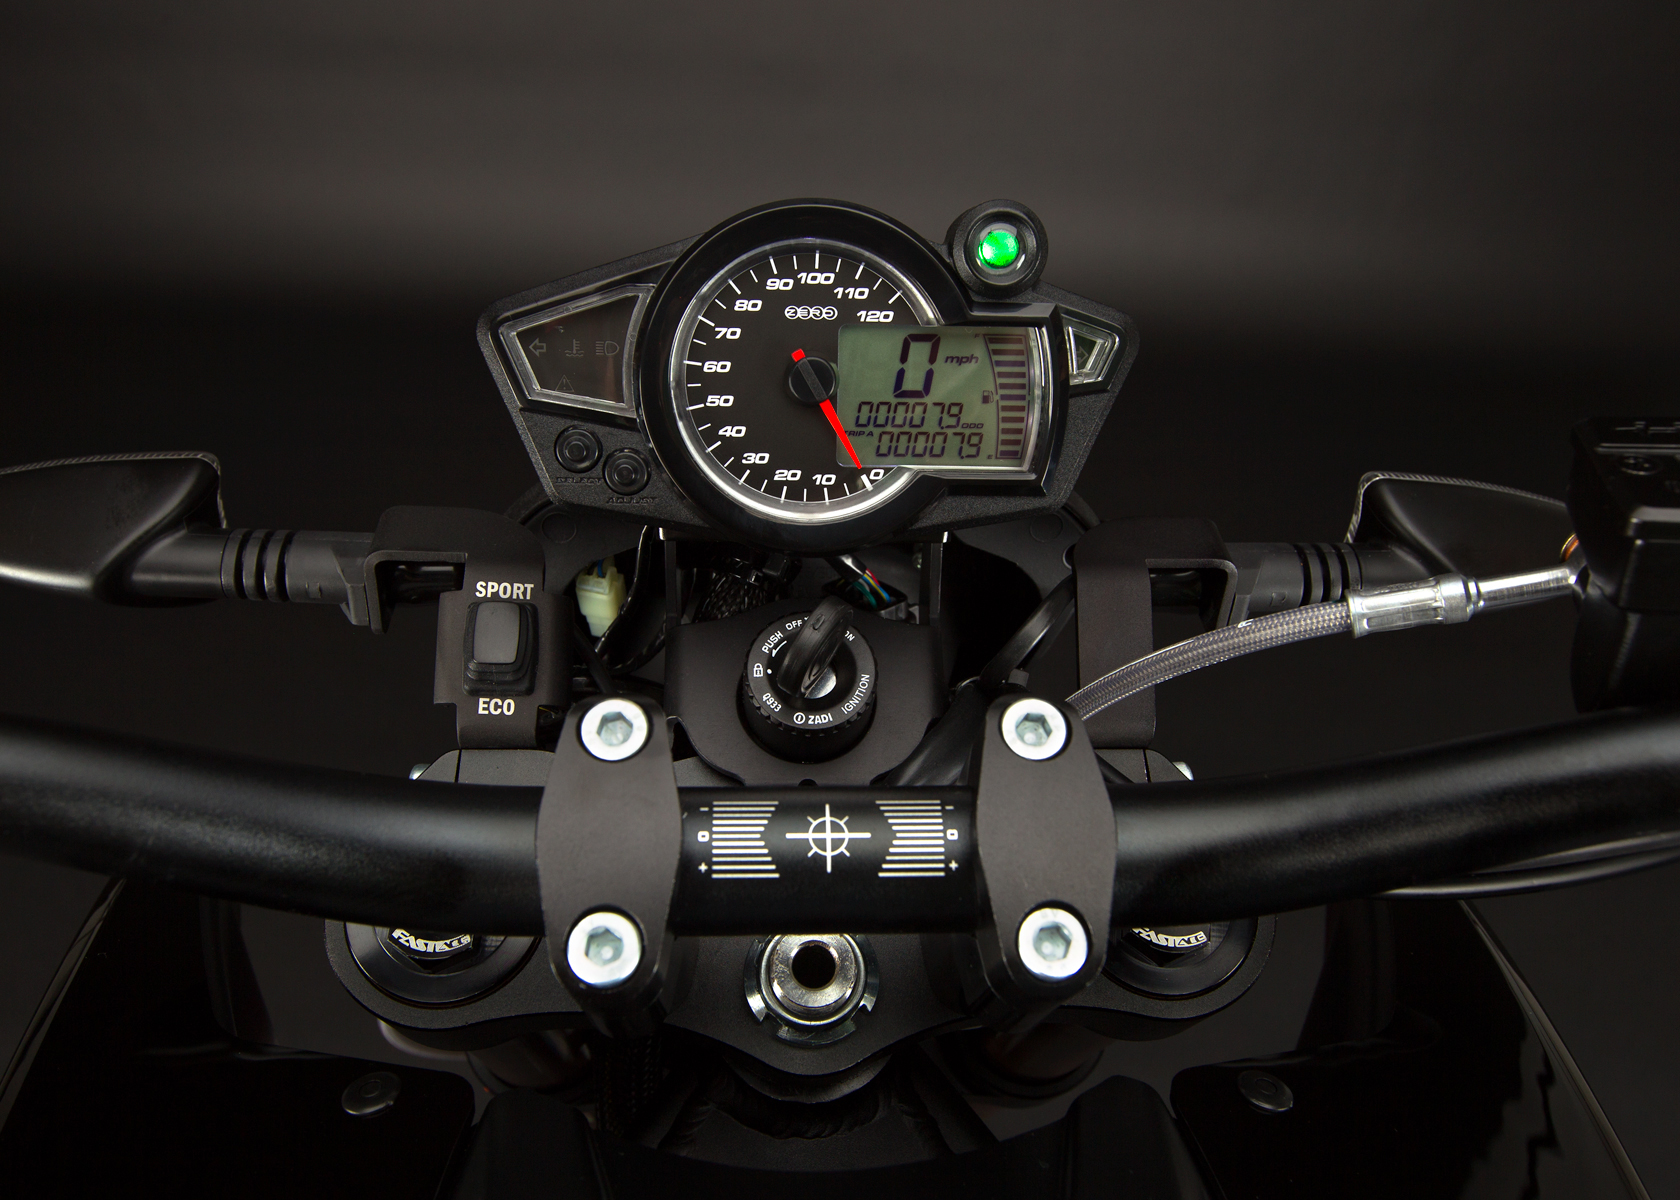 2012 Zero DS Electric Motorcycle: Dashboard